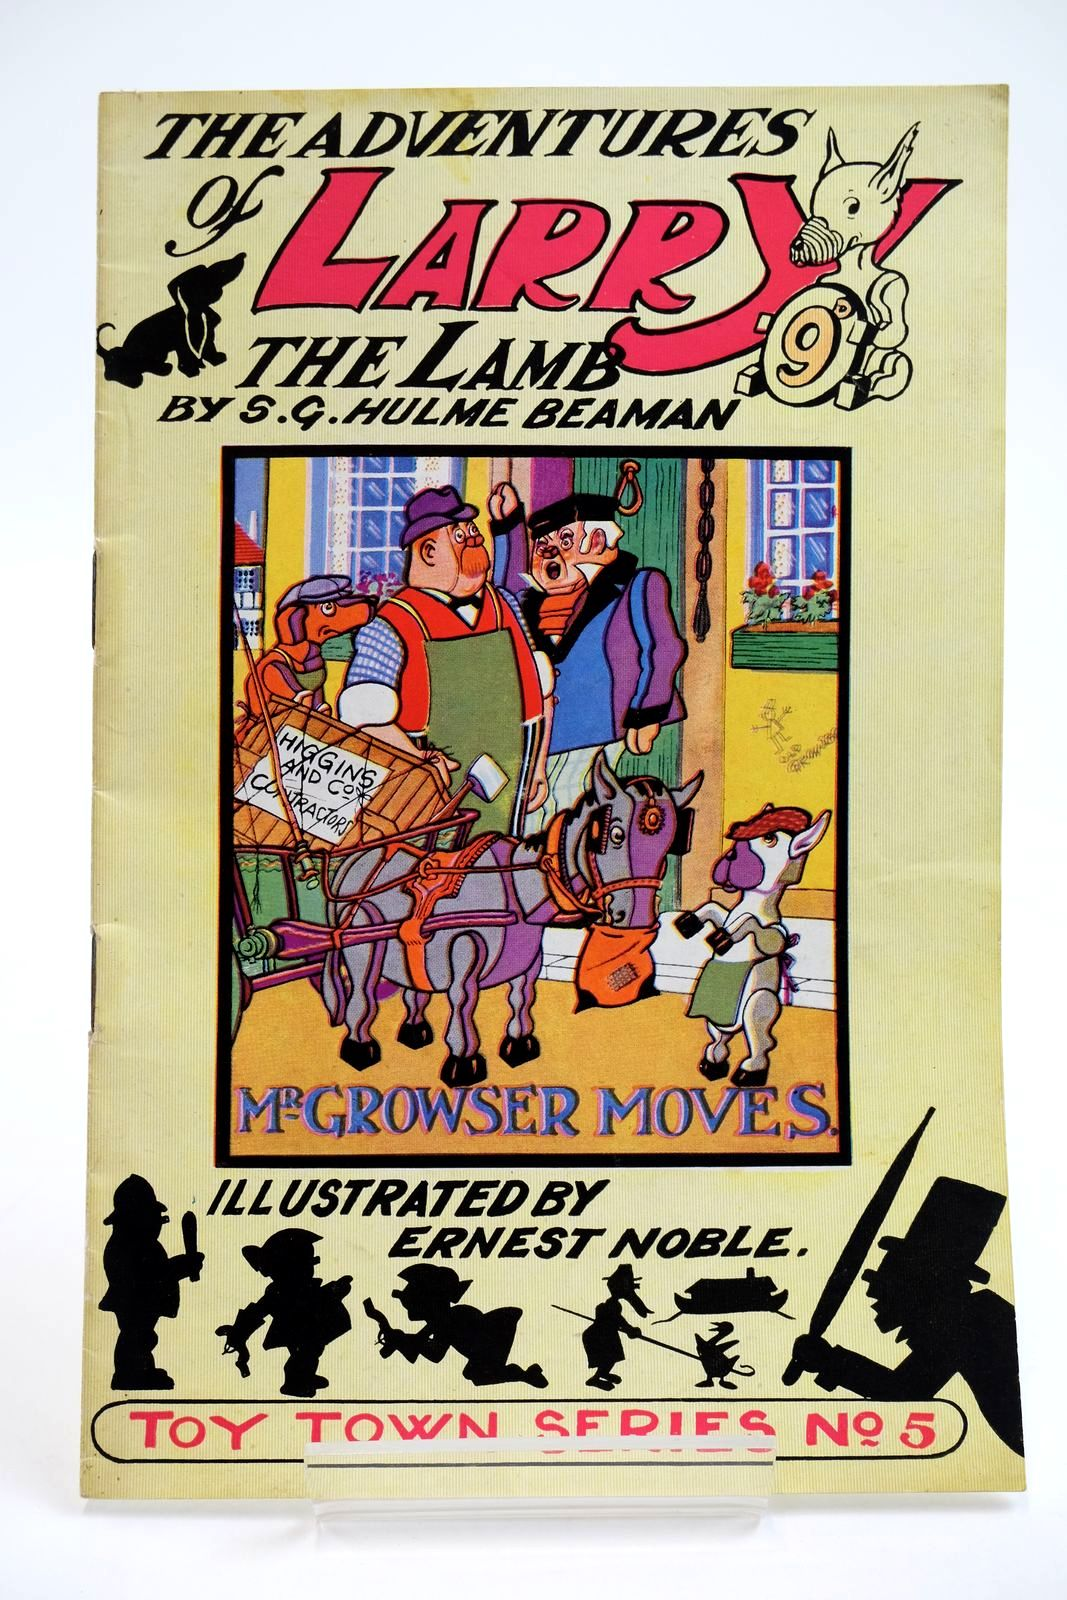 Photo of THE ADVENTURES OF LARRY THE LAMB - MR GROWSER MOVES written by Beaman, S.G. Hulme illustrated by Noble, Ernest published by George Lapworth & Co Ltd. (STOCK CODE: 2133902)  for sale by Stella & Rose's Books